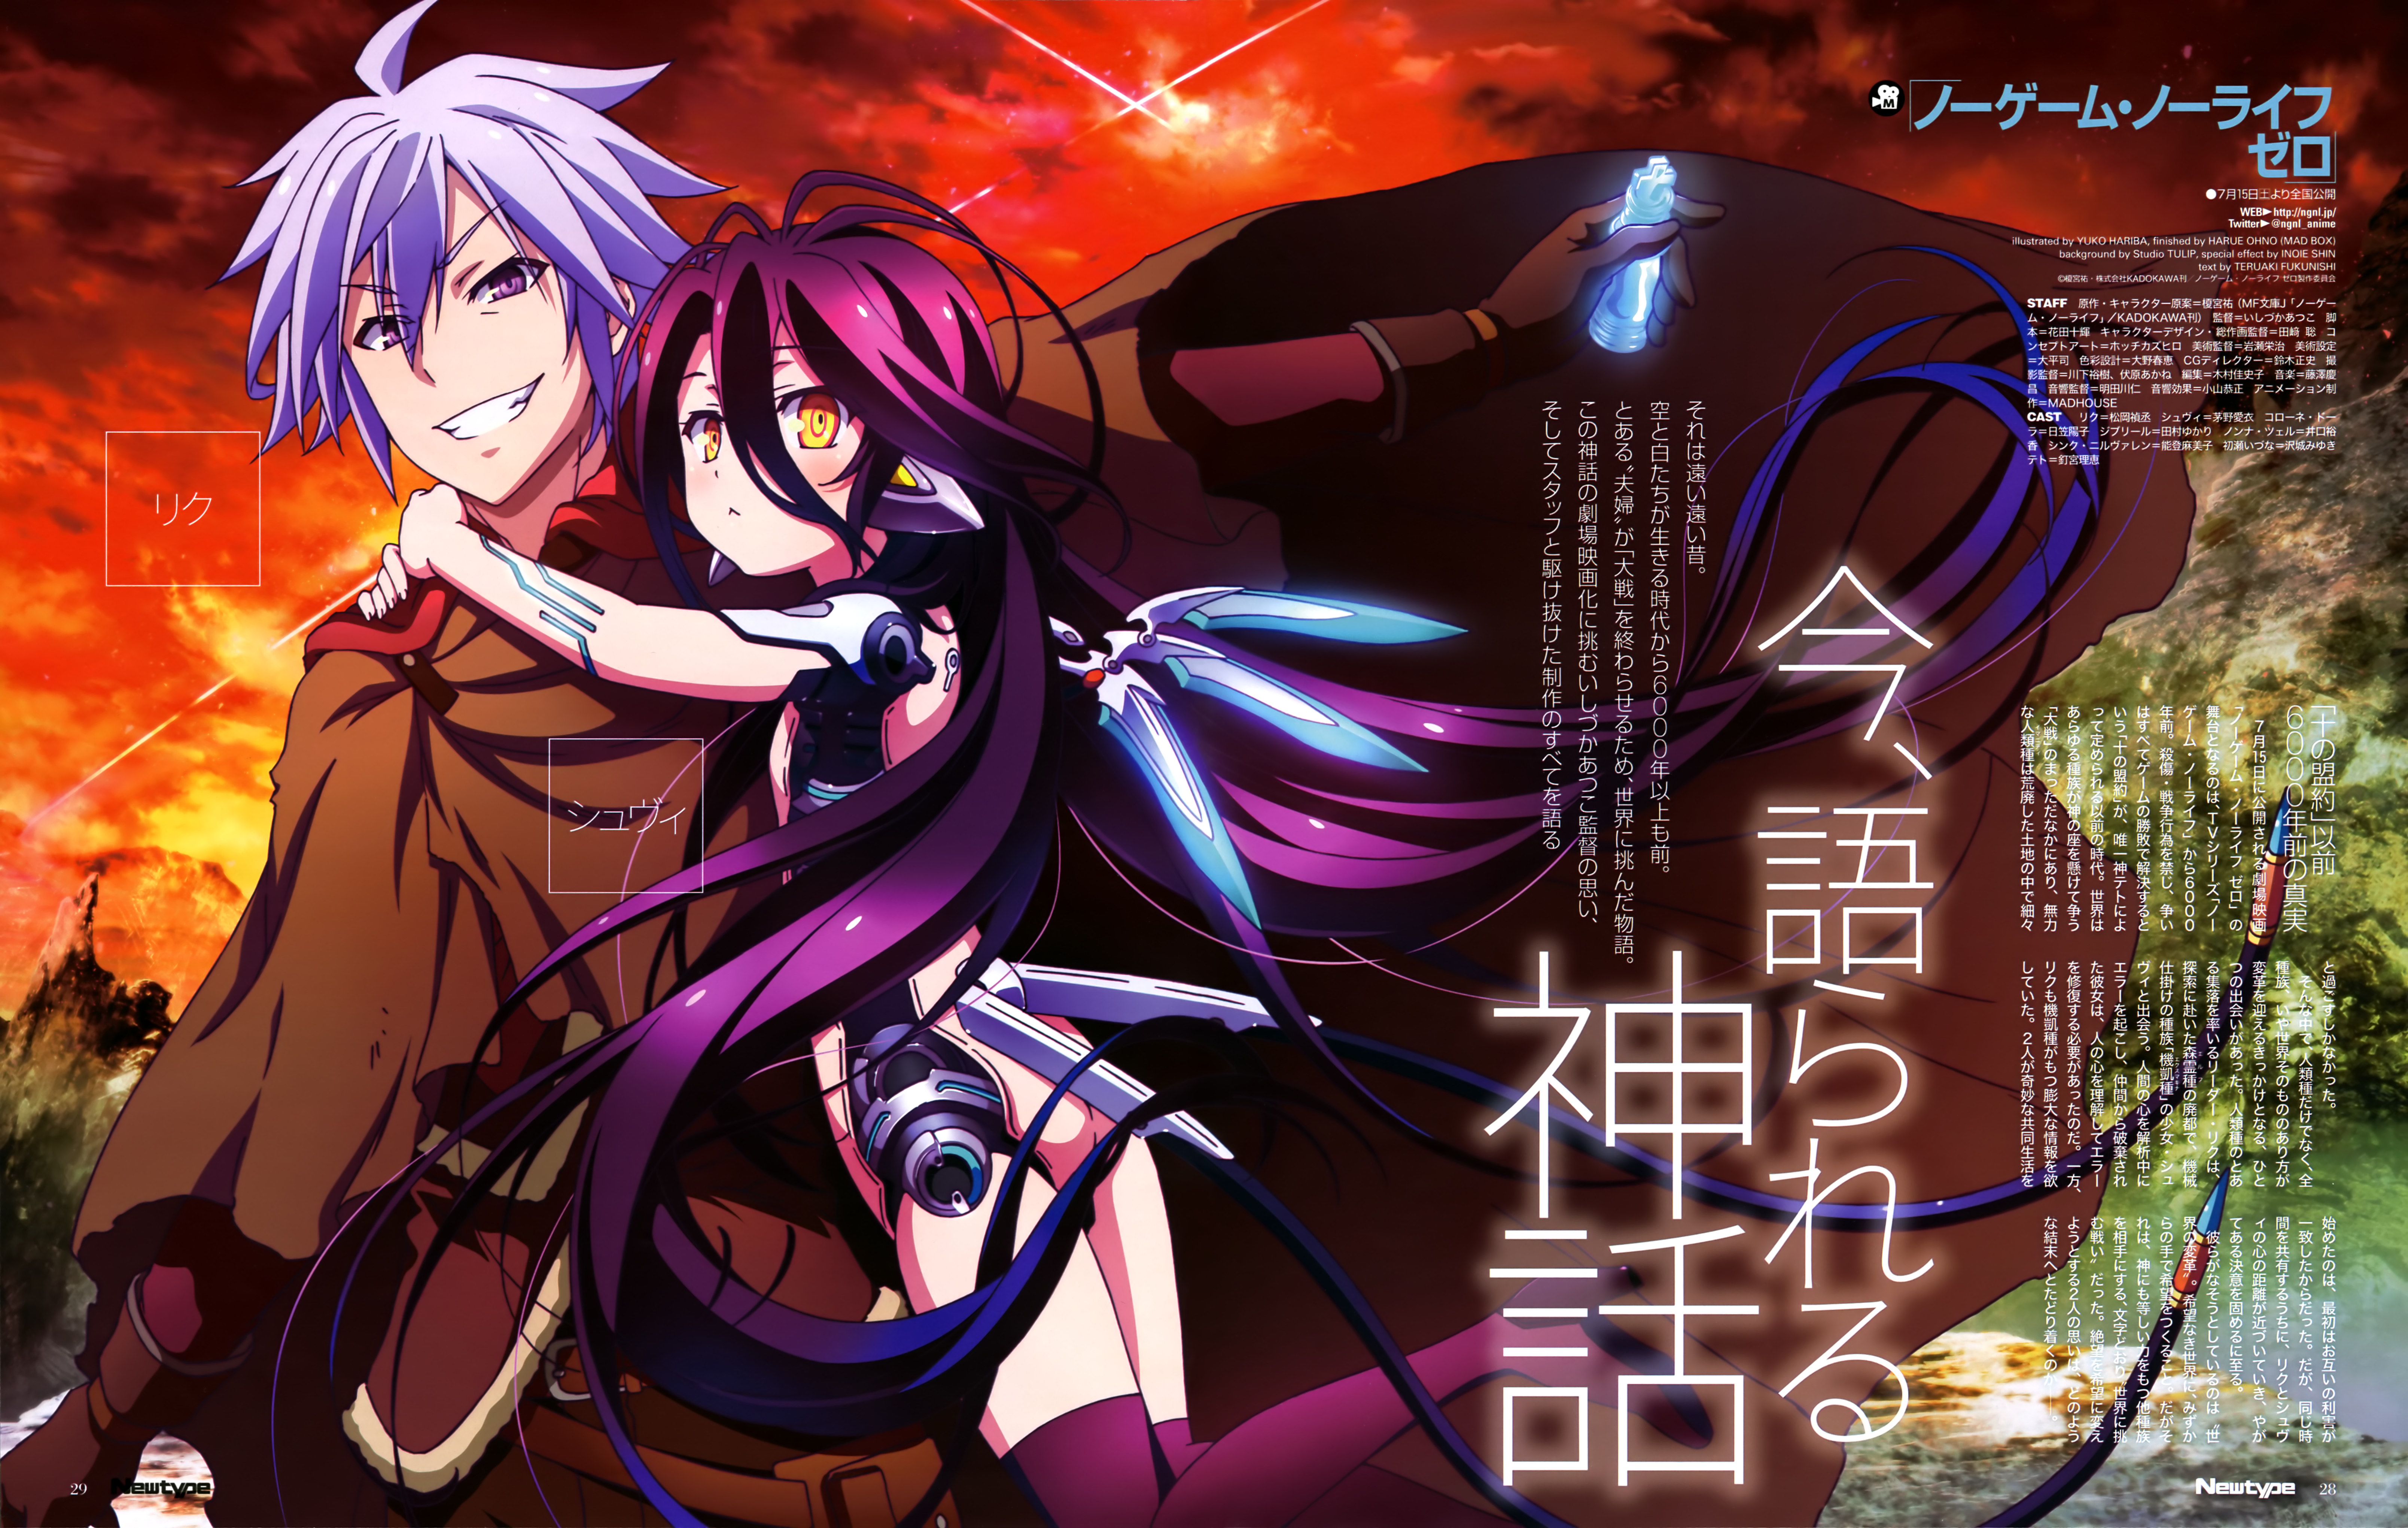 Shuvi No Game No Life Yandere